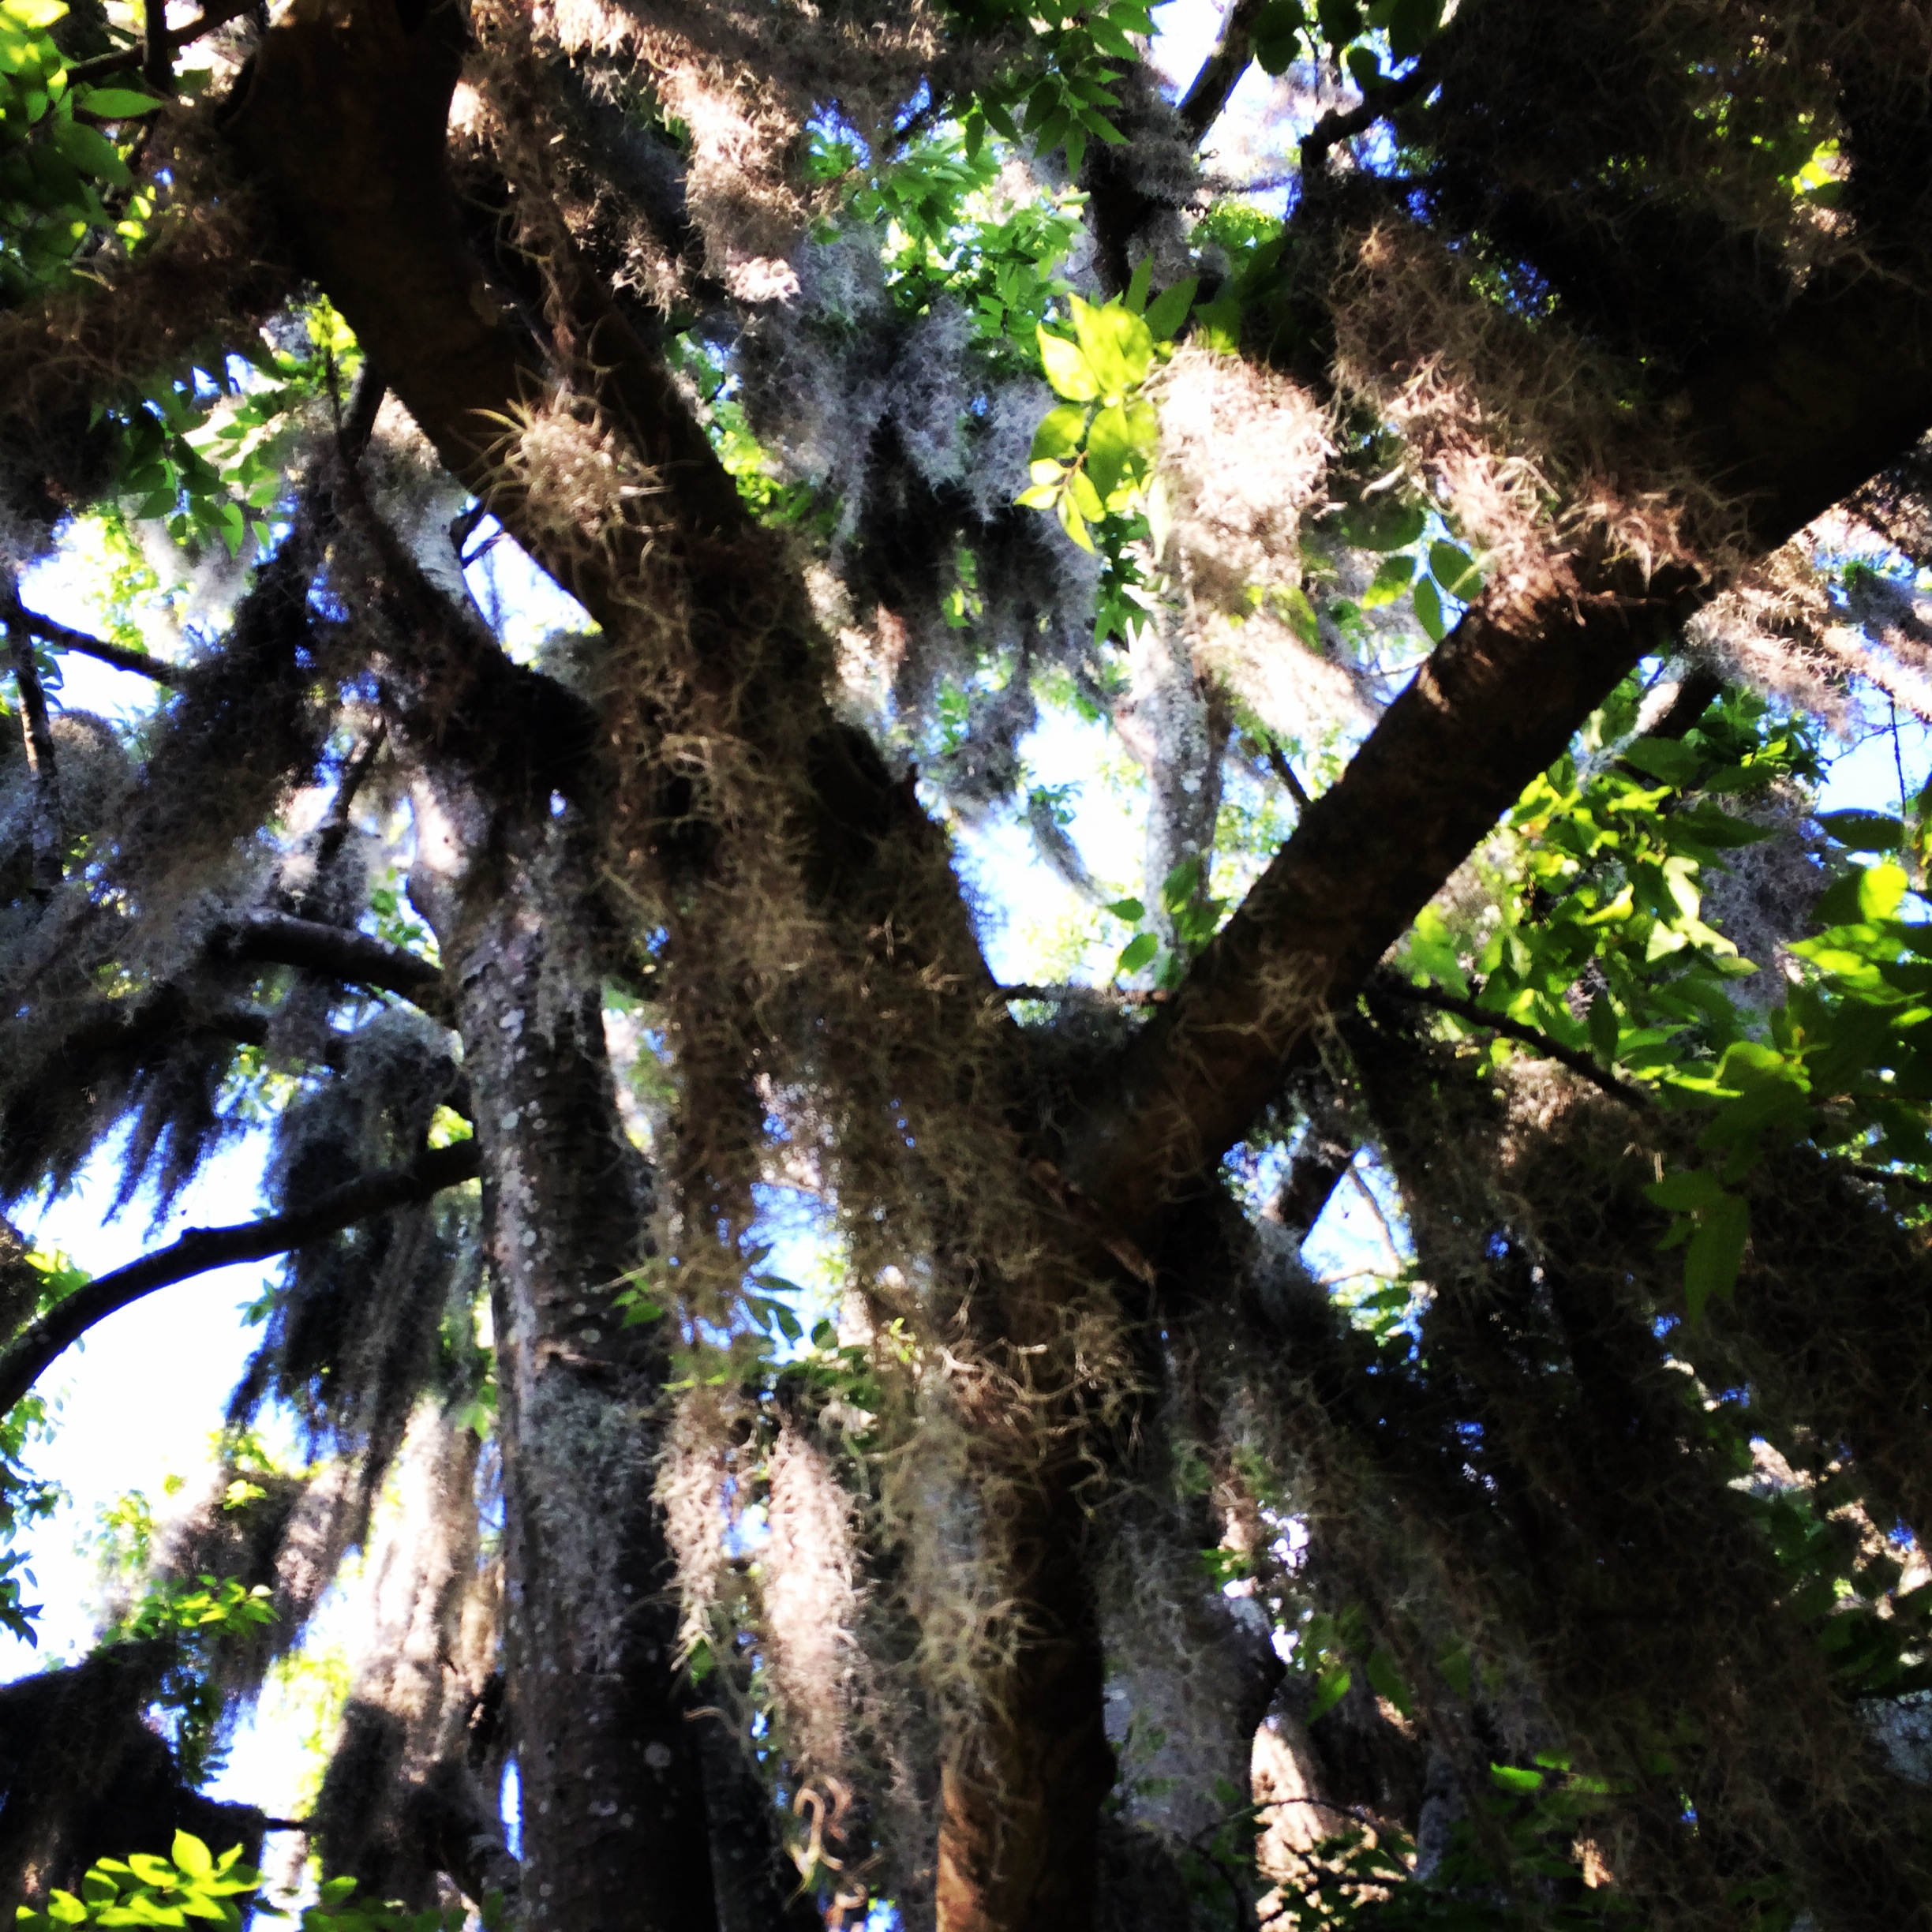 Day 3: Adventure to Savannah - Spanish Moss